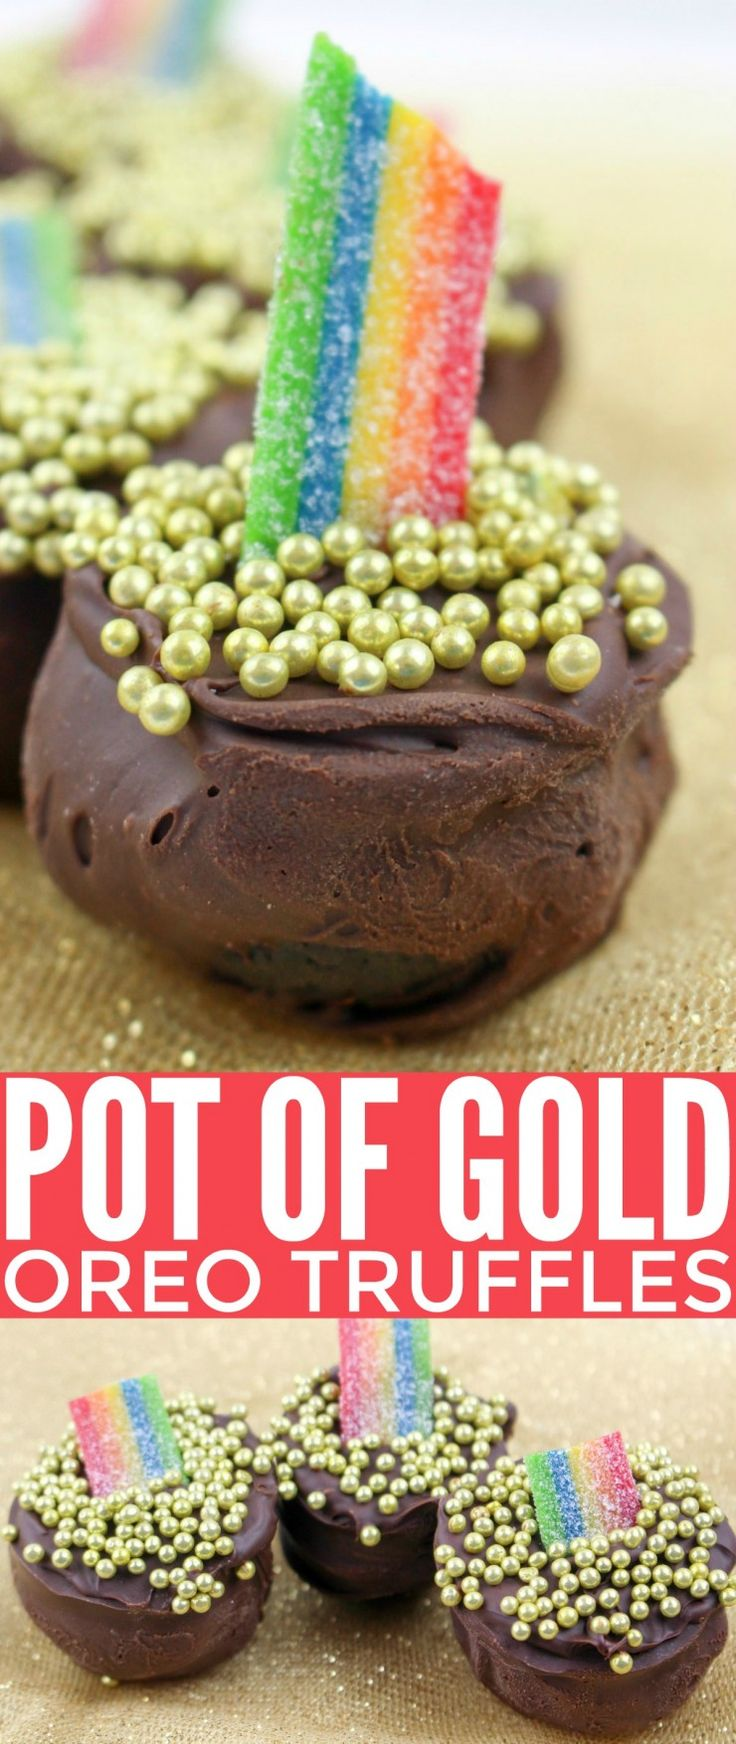 These Pot Of Gold Oreo Truffles are an adorable St. Patrick's Day treat. Featuring an oreo cheesecake centre and enrobed with chocolate, these adorable truffles are sure to be a hit.